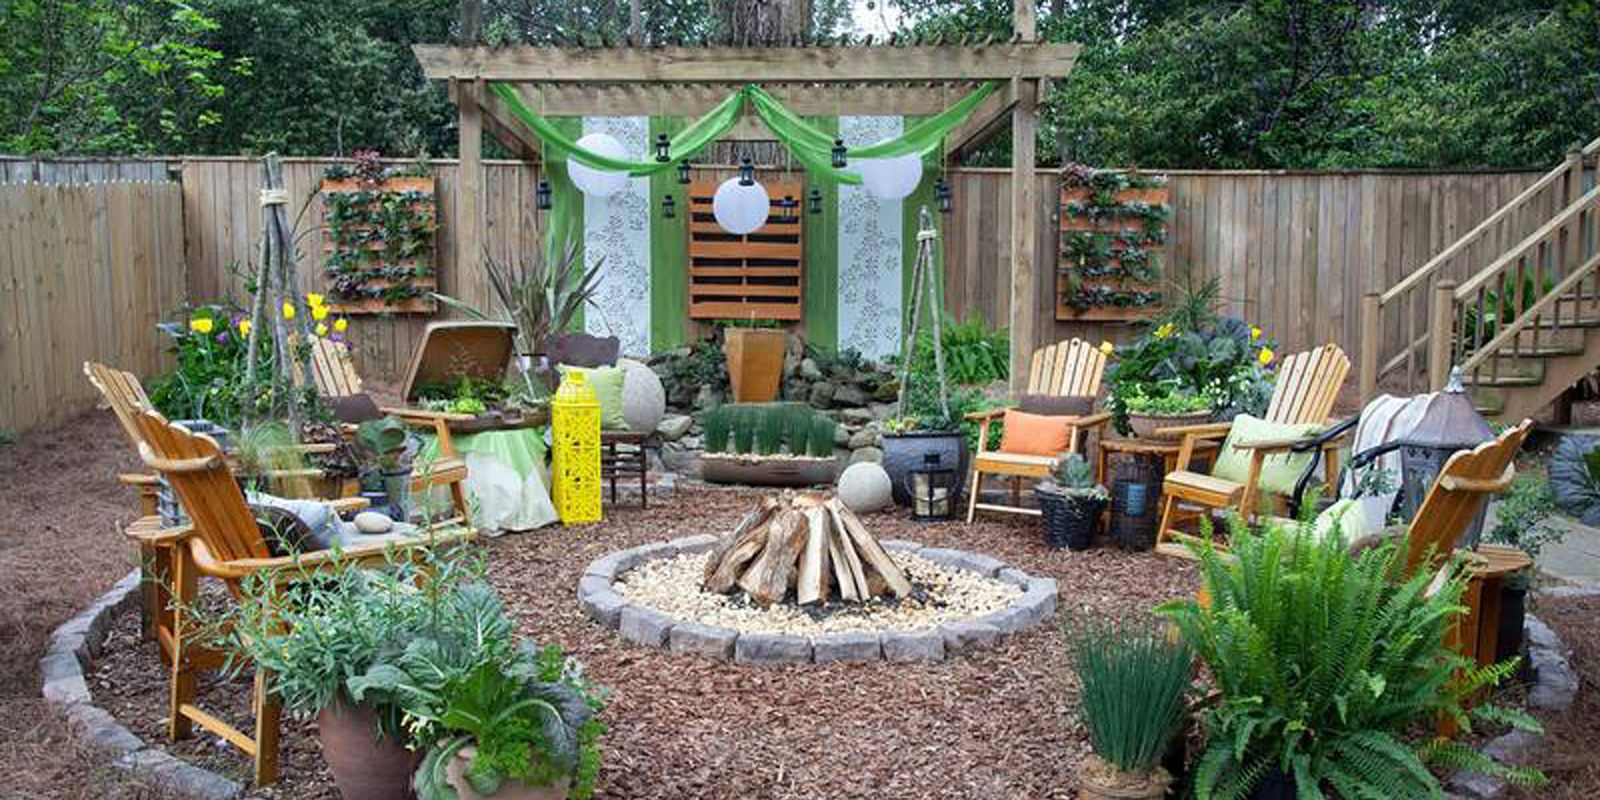 Backyard oasis beautiful backyard ideas - Design your backyard online ...